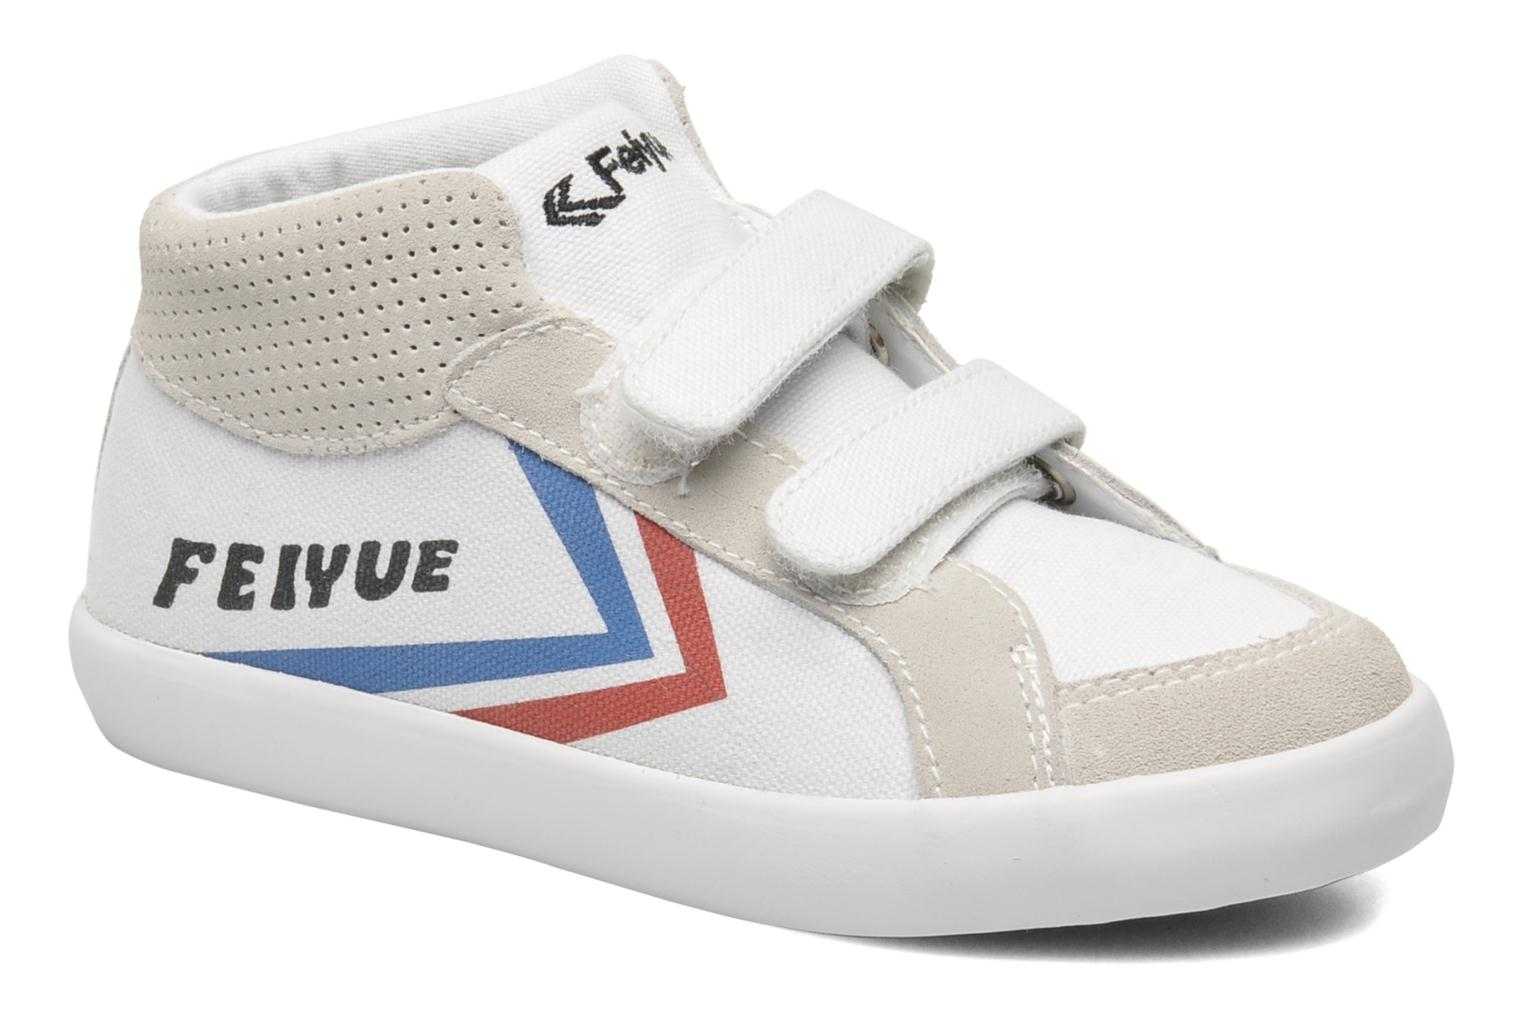 Sneakers DELTA MID SCRATCH CLASSIC by Feiyue